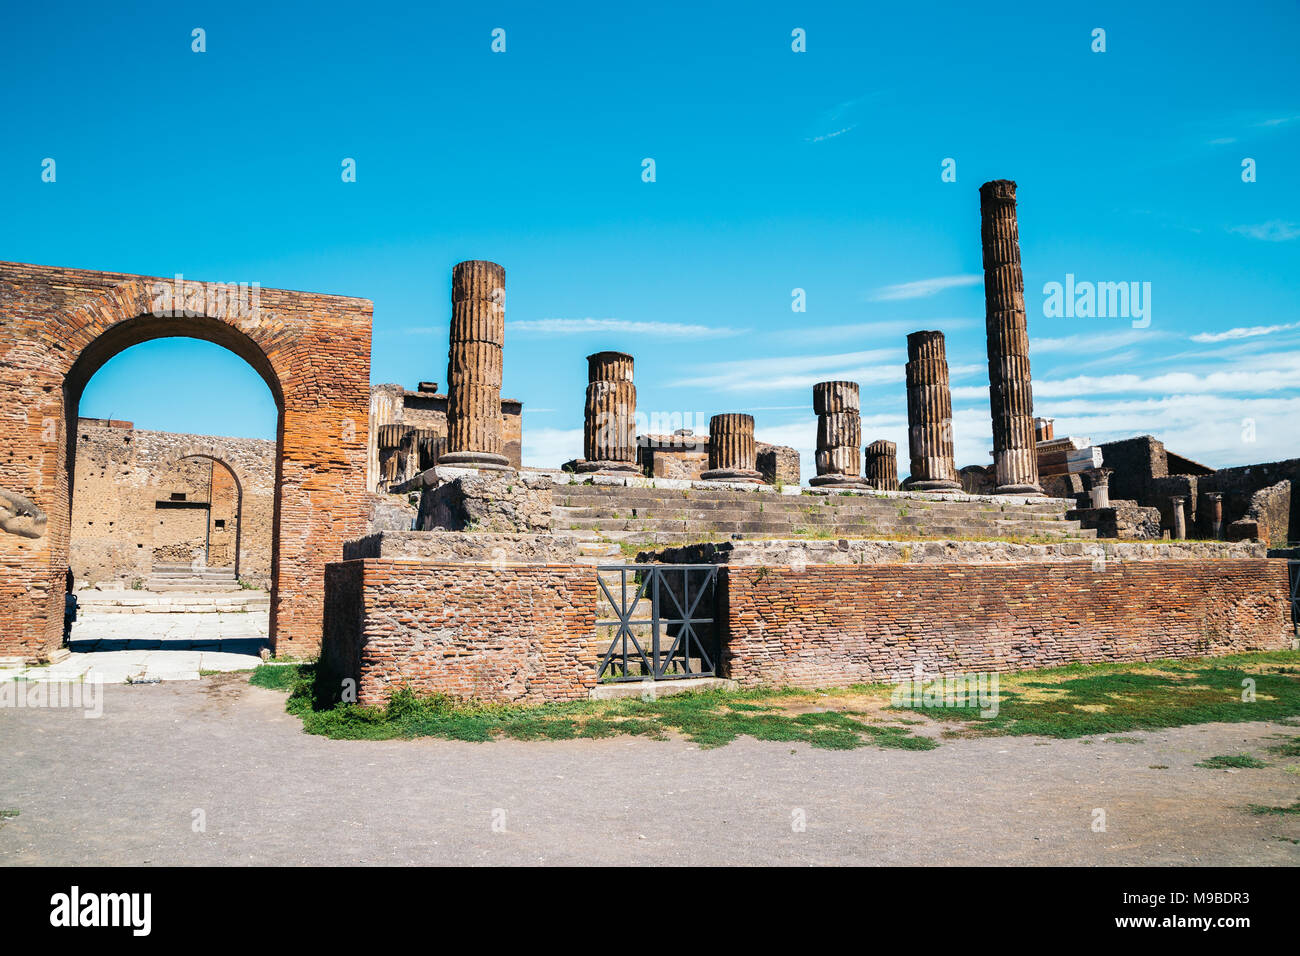 Ruins of Pompeii. Pompeii is an ancient Roman city died from the eruption of Mount Vesuvius in 79 AD Stock Photo